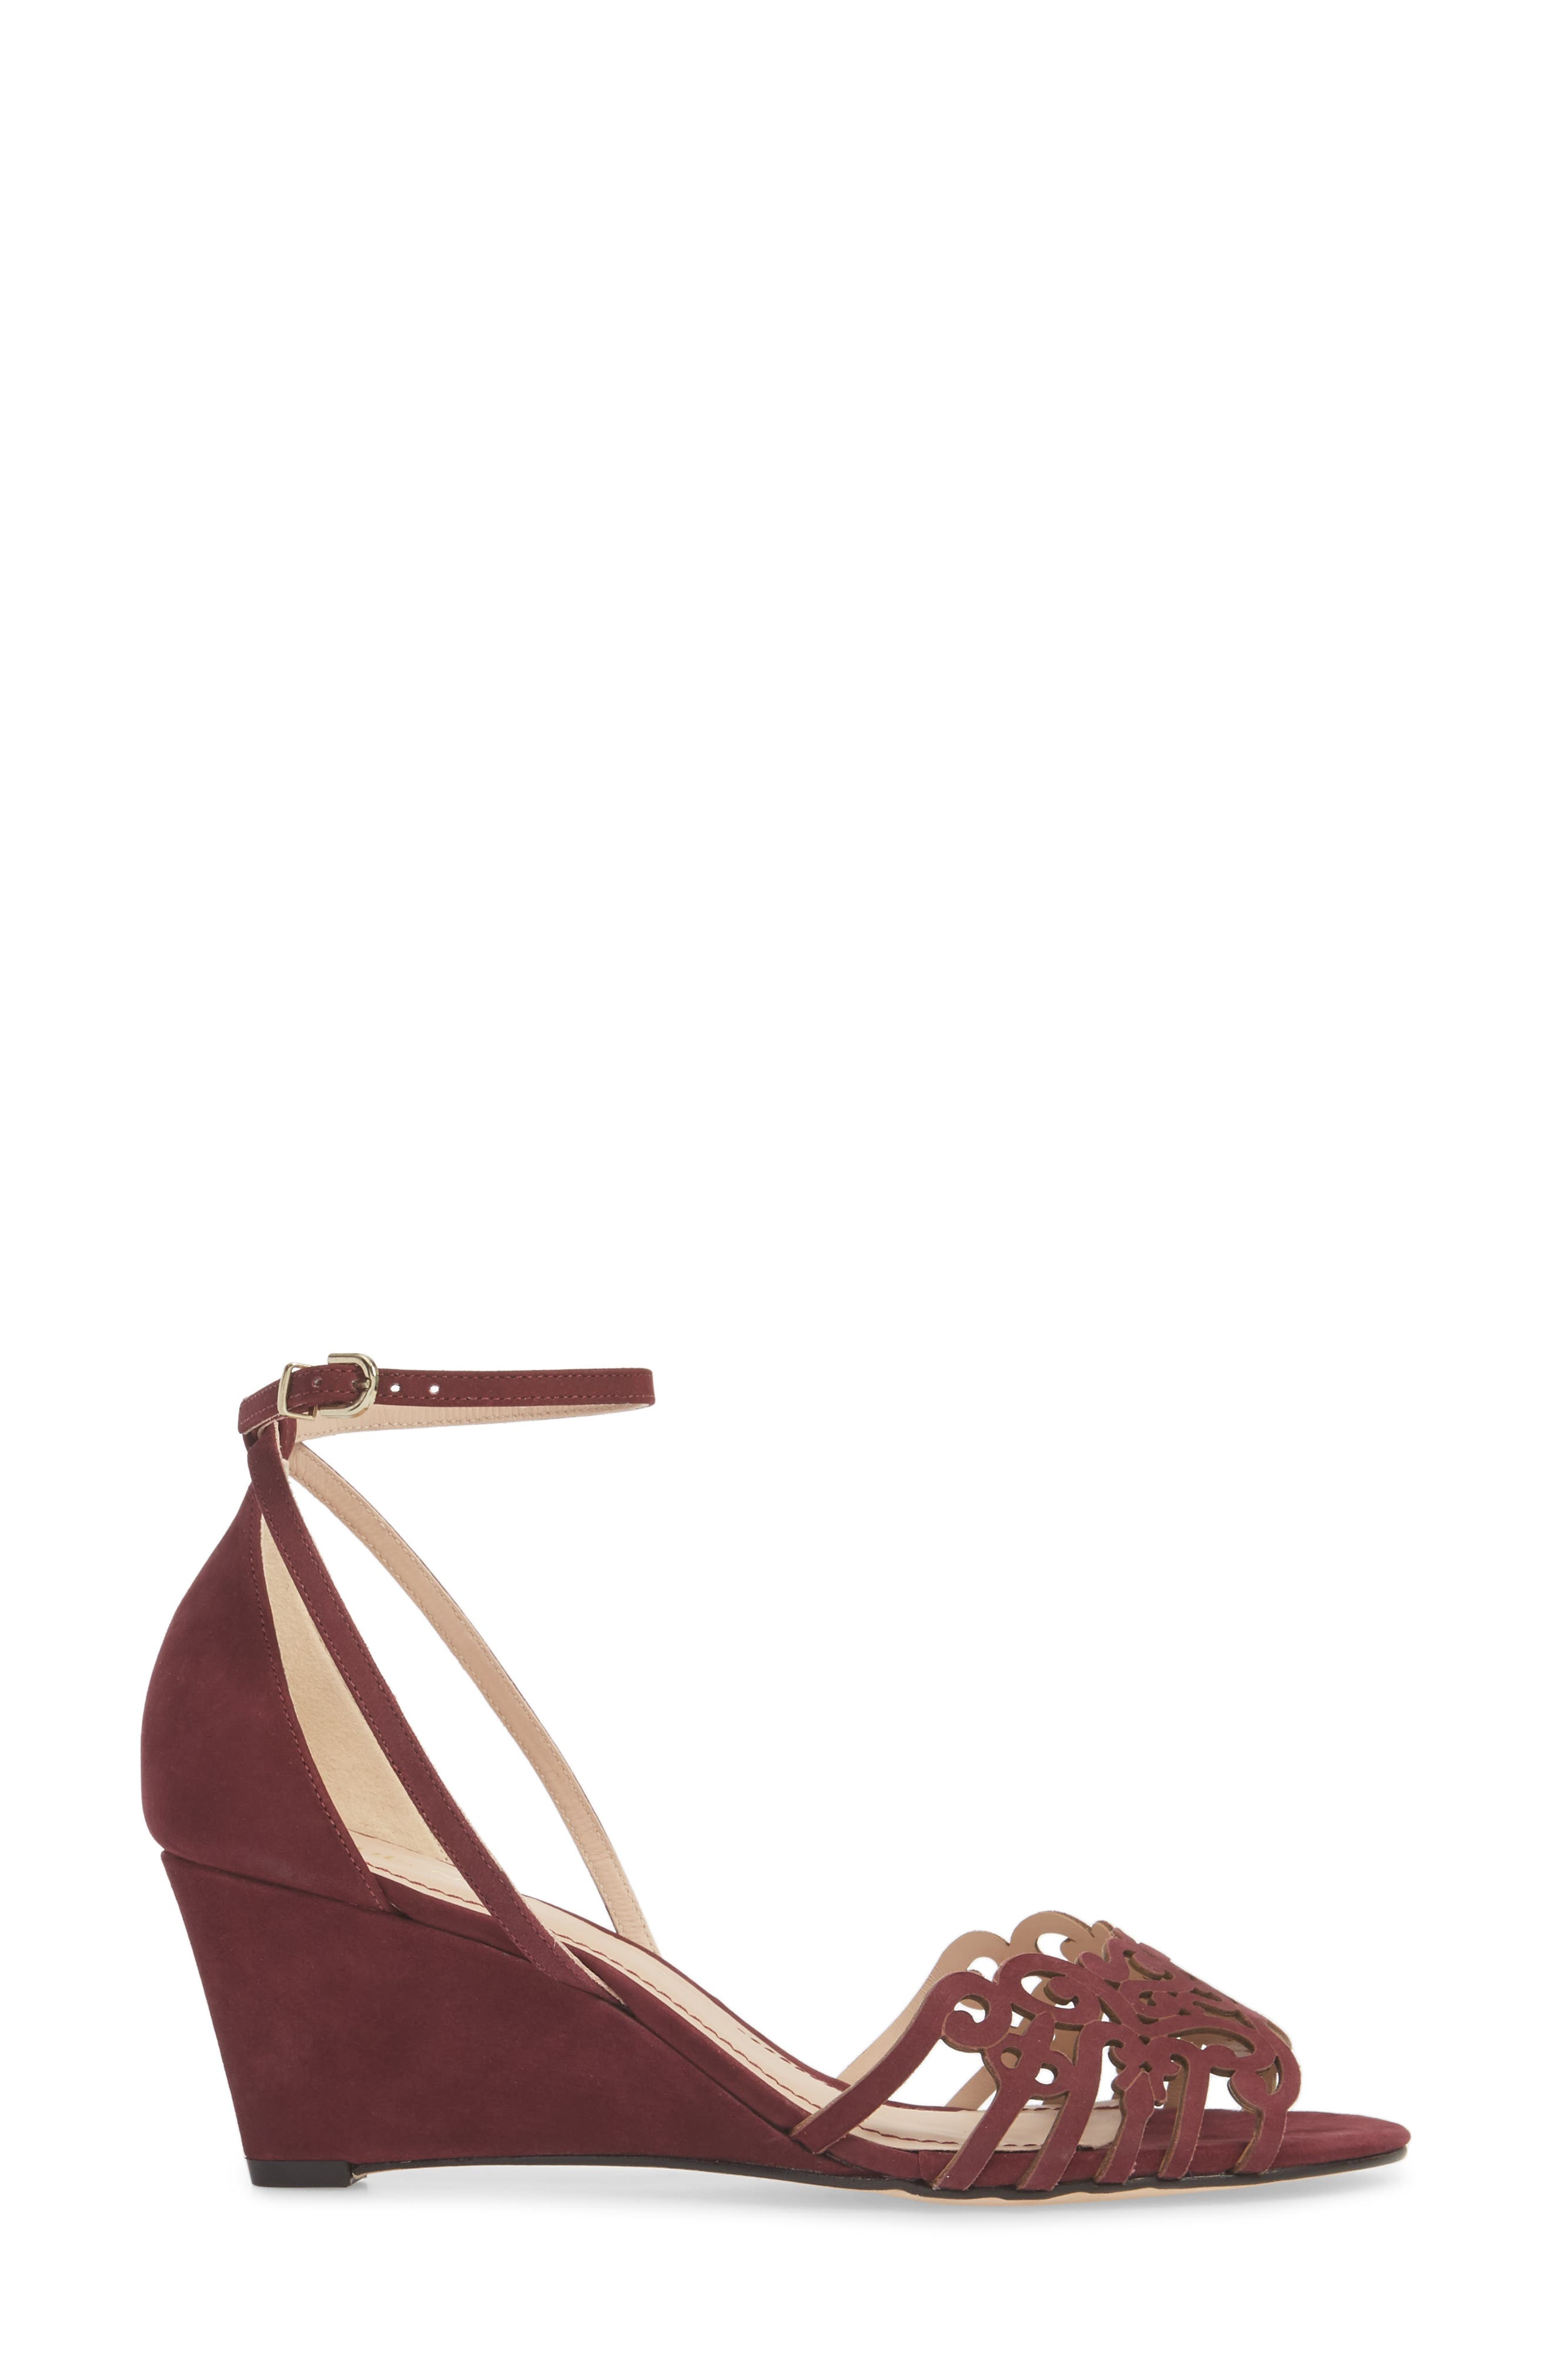 'Kingston' Ankle Strap Wedge Sandal,                             Alternate thumbnail 3, color,                             WINE LEATHER